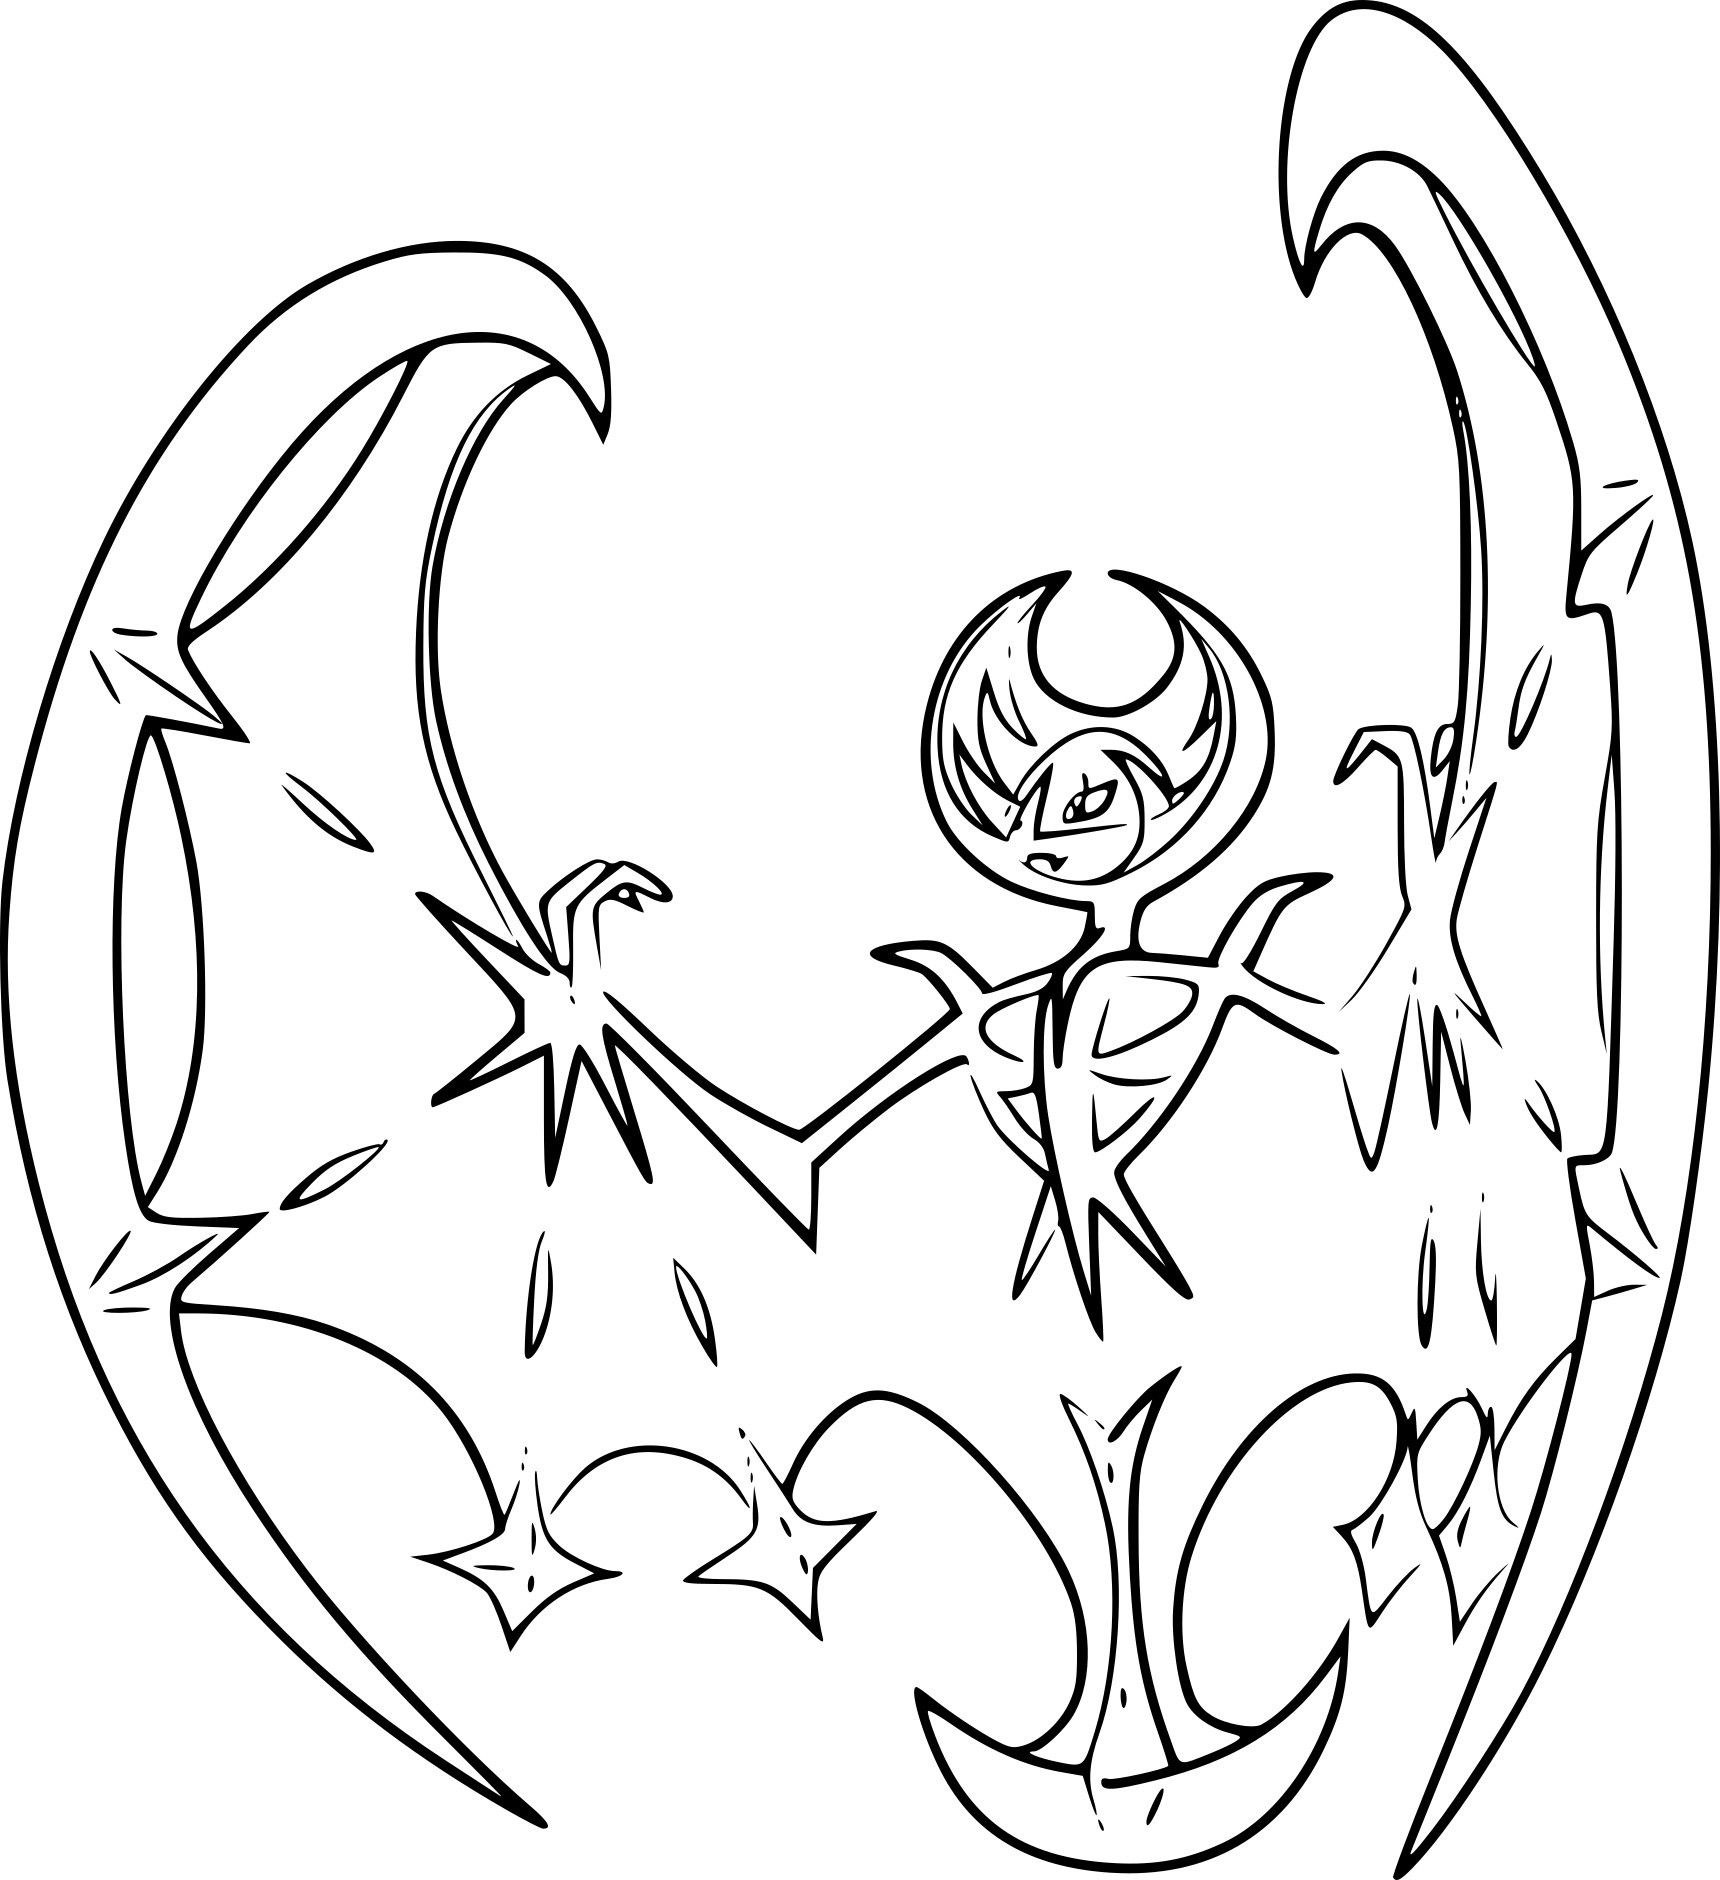 Pokemon Lunala Coloring Pages - Through the thousands of ...